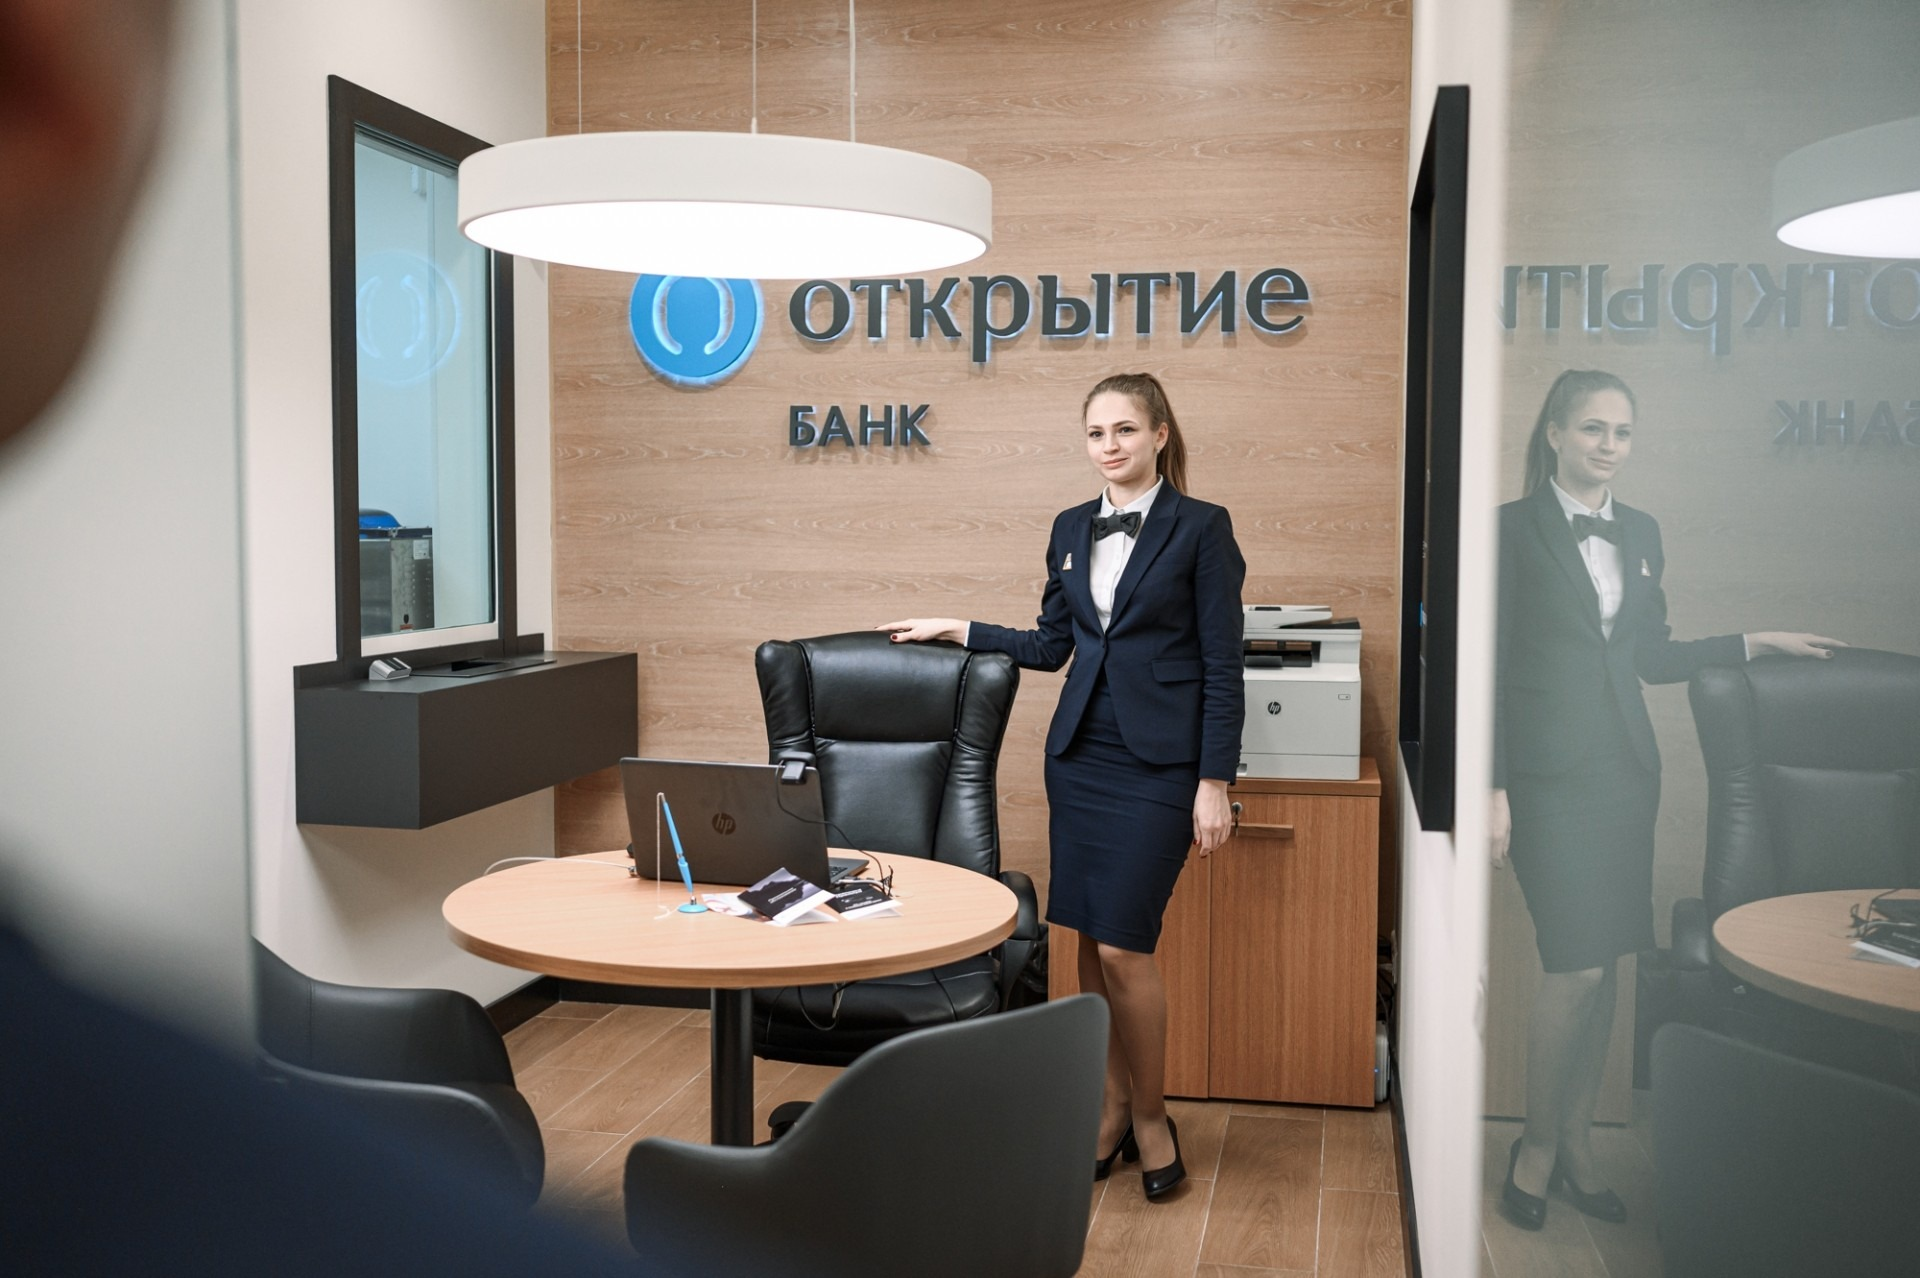 Банк «Открытие» вошел в ТОП-5 рейтинга Mobile Banking Rank Markswebb